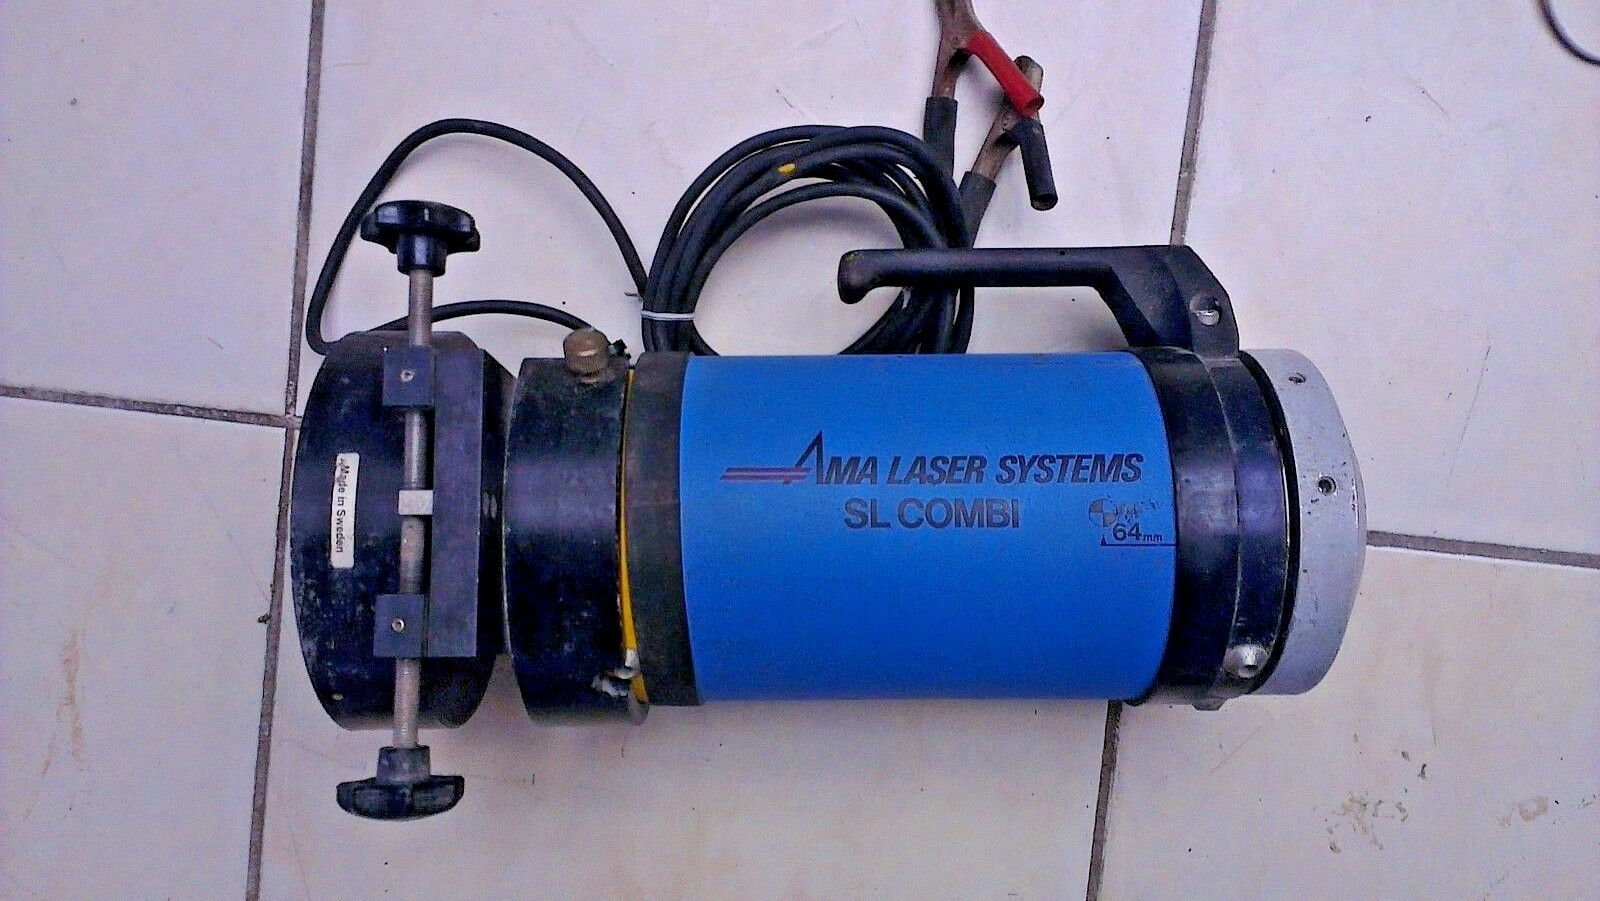 AMA LASER SYSTEMS SL COMBI 64mm Model 10101